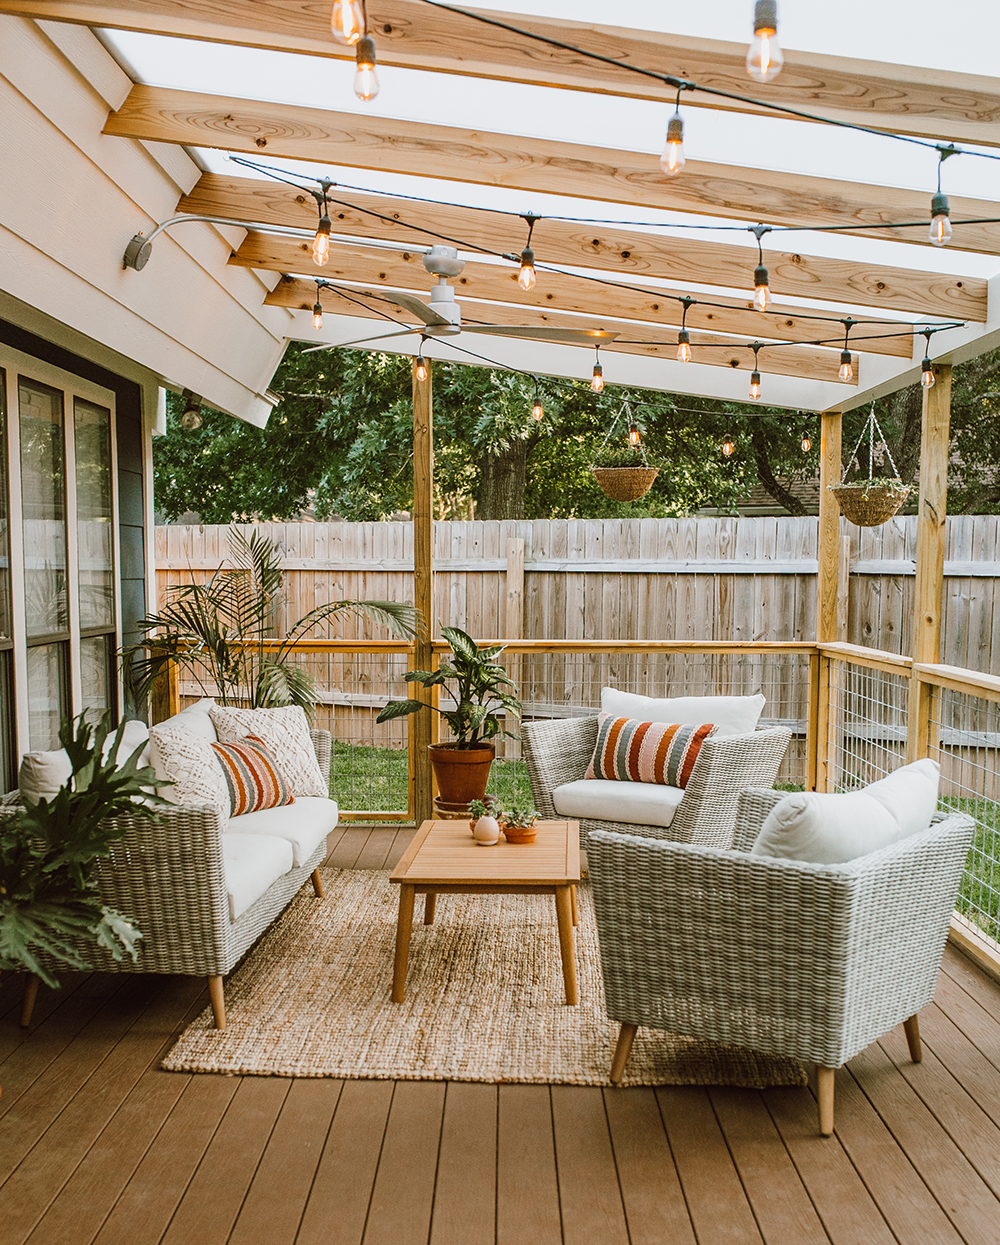 a simple deck with pale awning and string lighting going across it